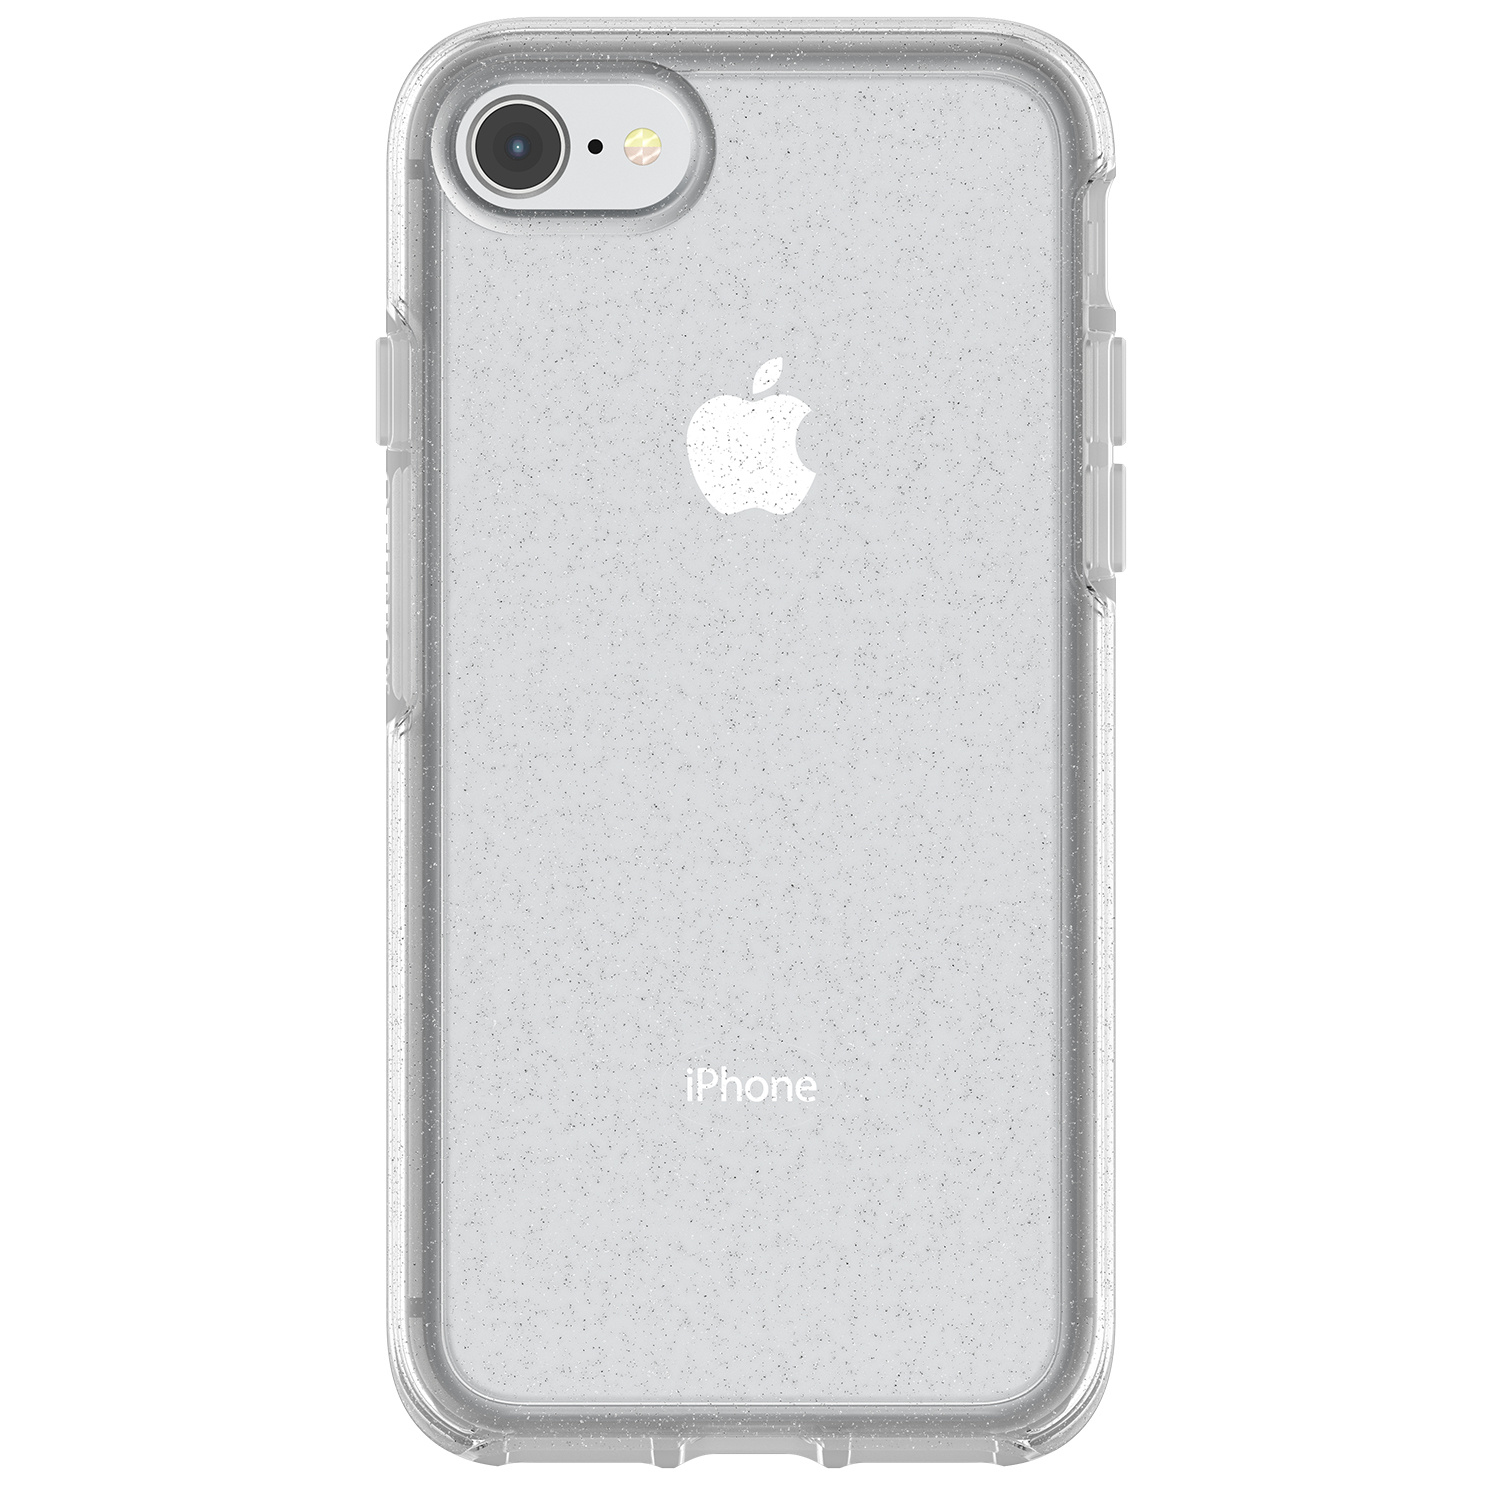 OtterBox Symmetry Clear Backcover iPhone SE (2020) / 8 / 7 - Stardust